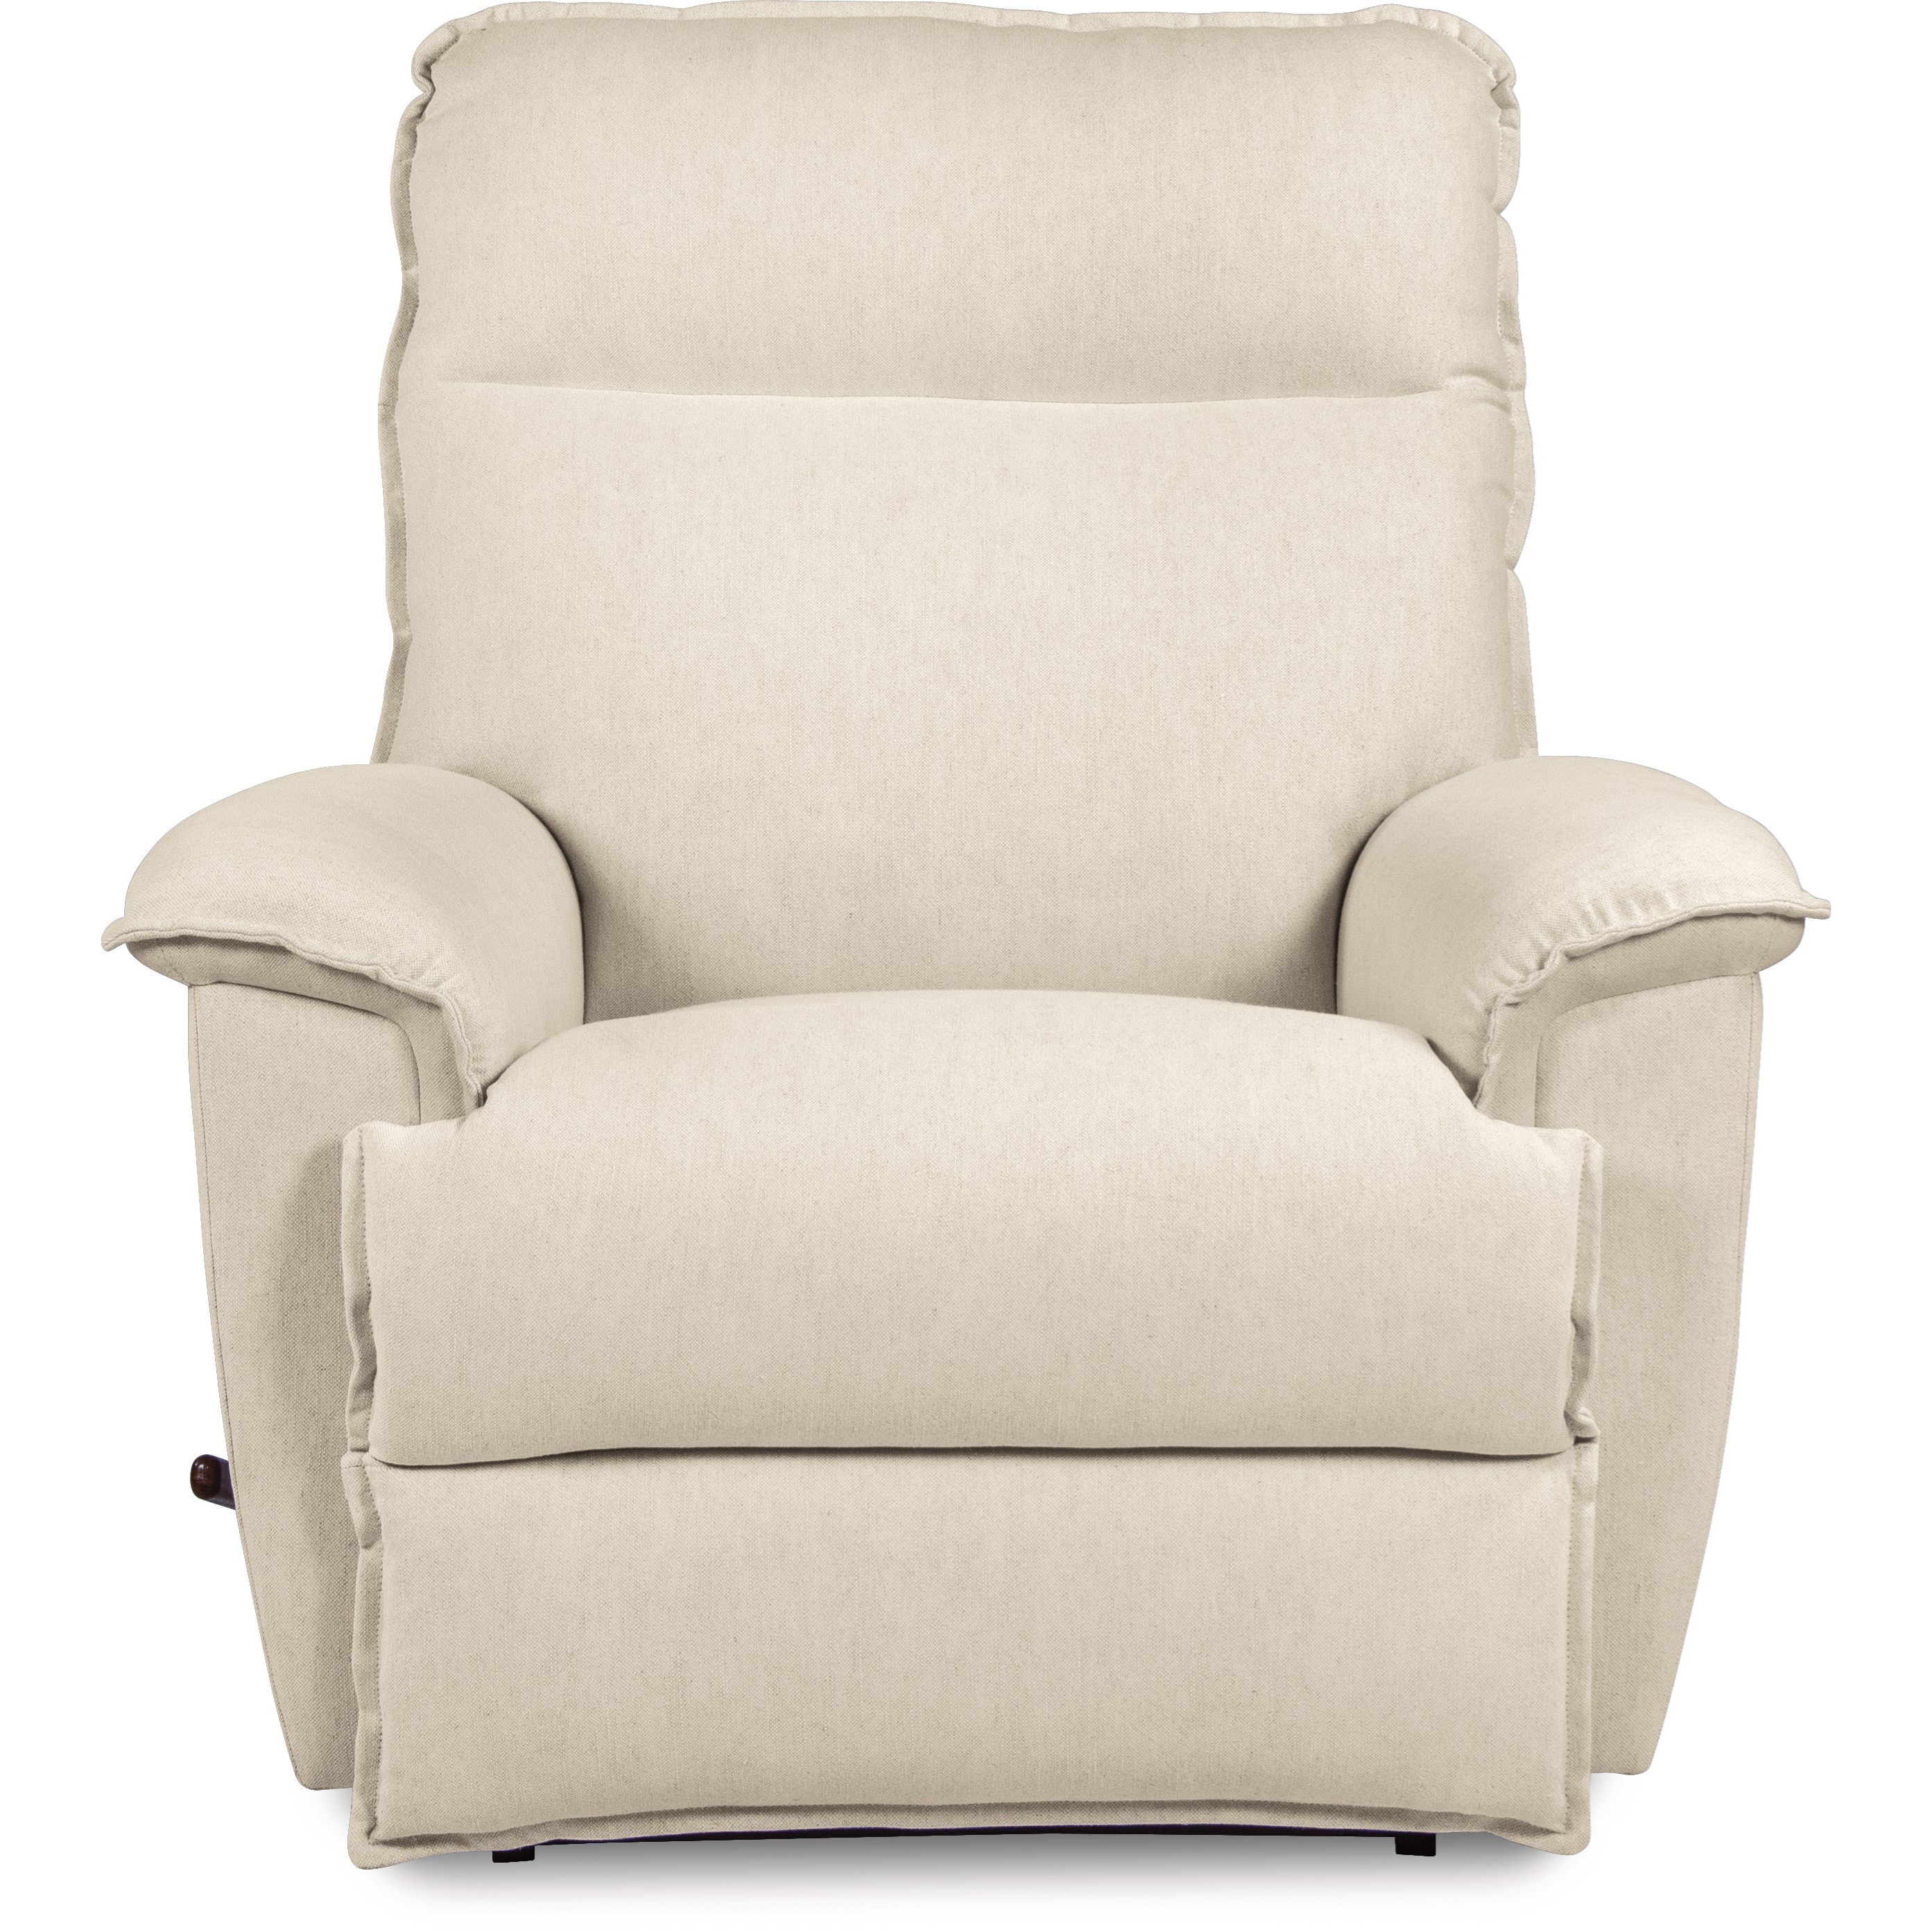 Jay RECLINA-WAY® Wall Saver Recliner